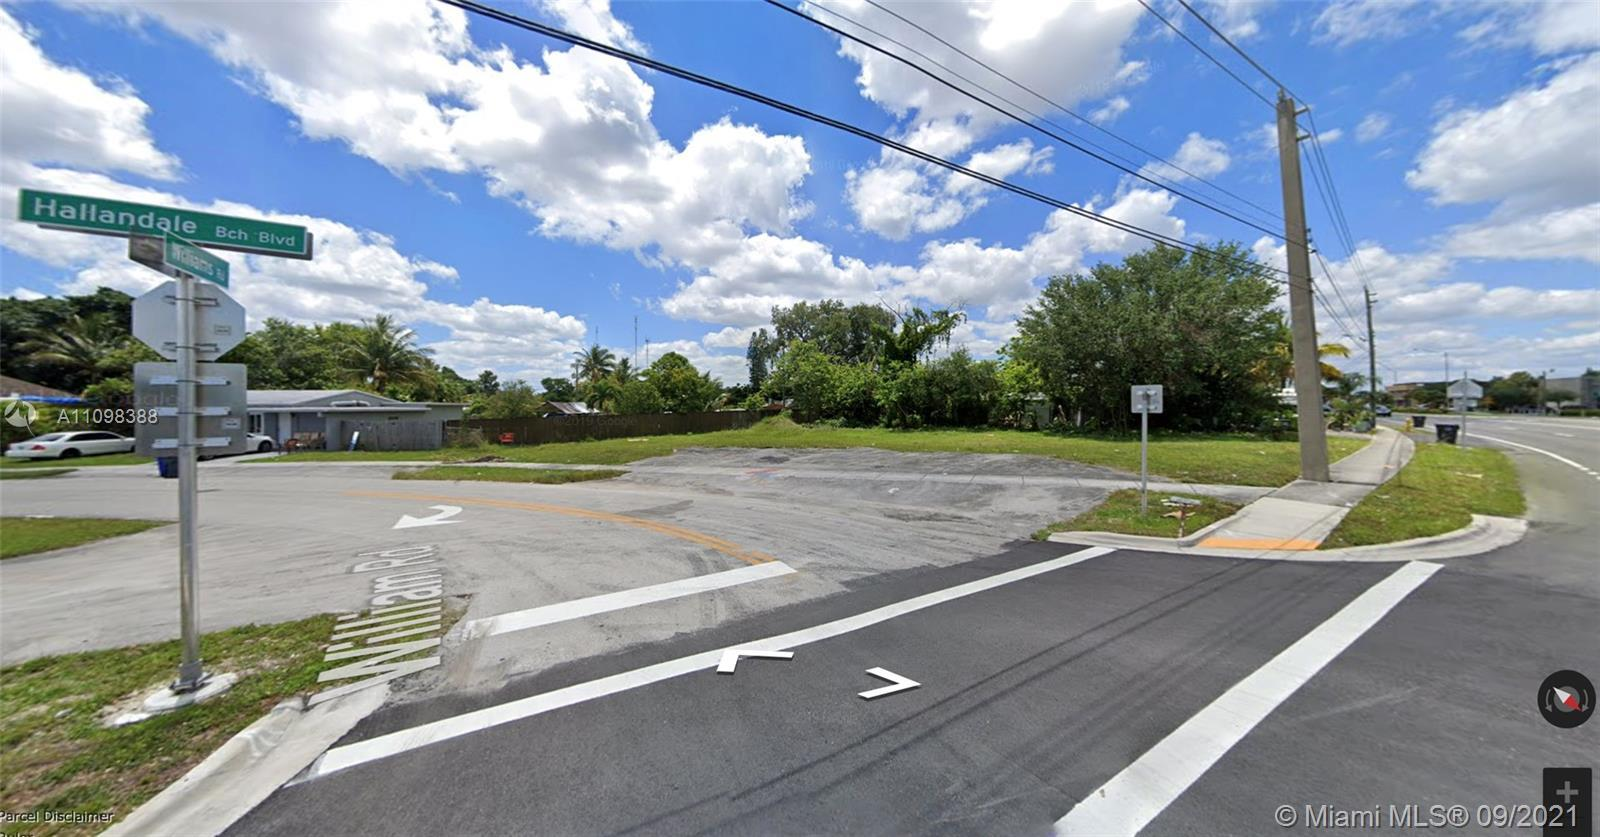 EXCELLENT VACANT COMMERCIAL LOT ON A BUSY ROAD. GREAT BUSINESS OPPORTUNITY. CORNER LOT GREAT FOR, R